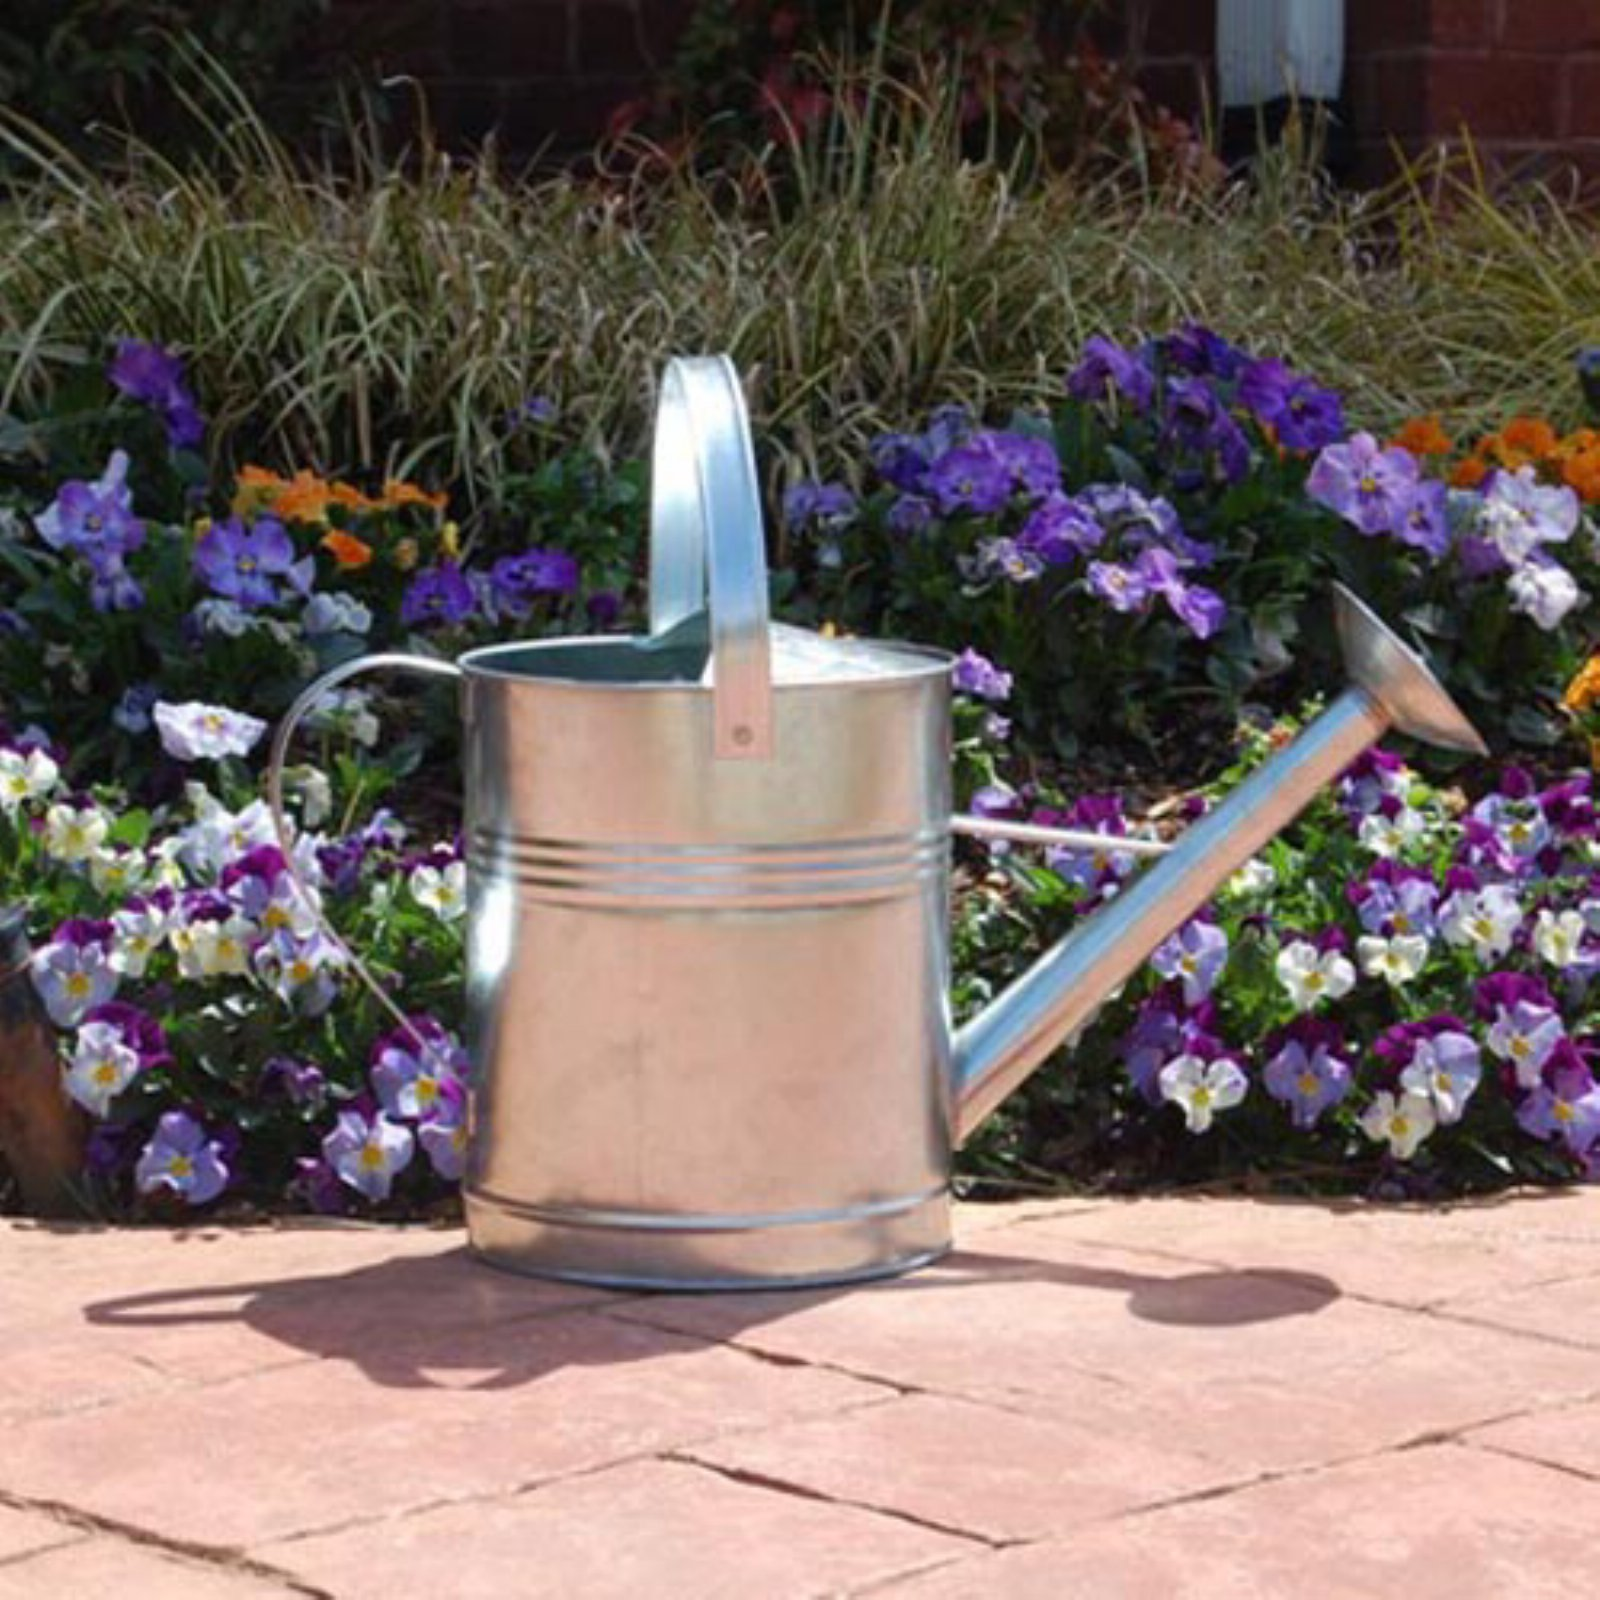 Austram-Griffith Creek Designs Galvanized Steel Silver Watering Can by Austram Inc